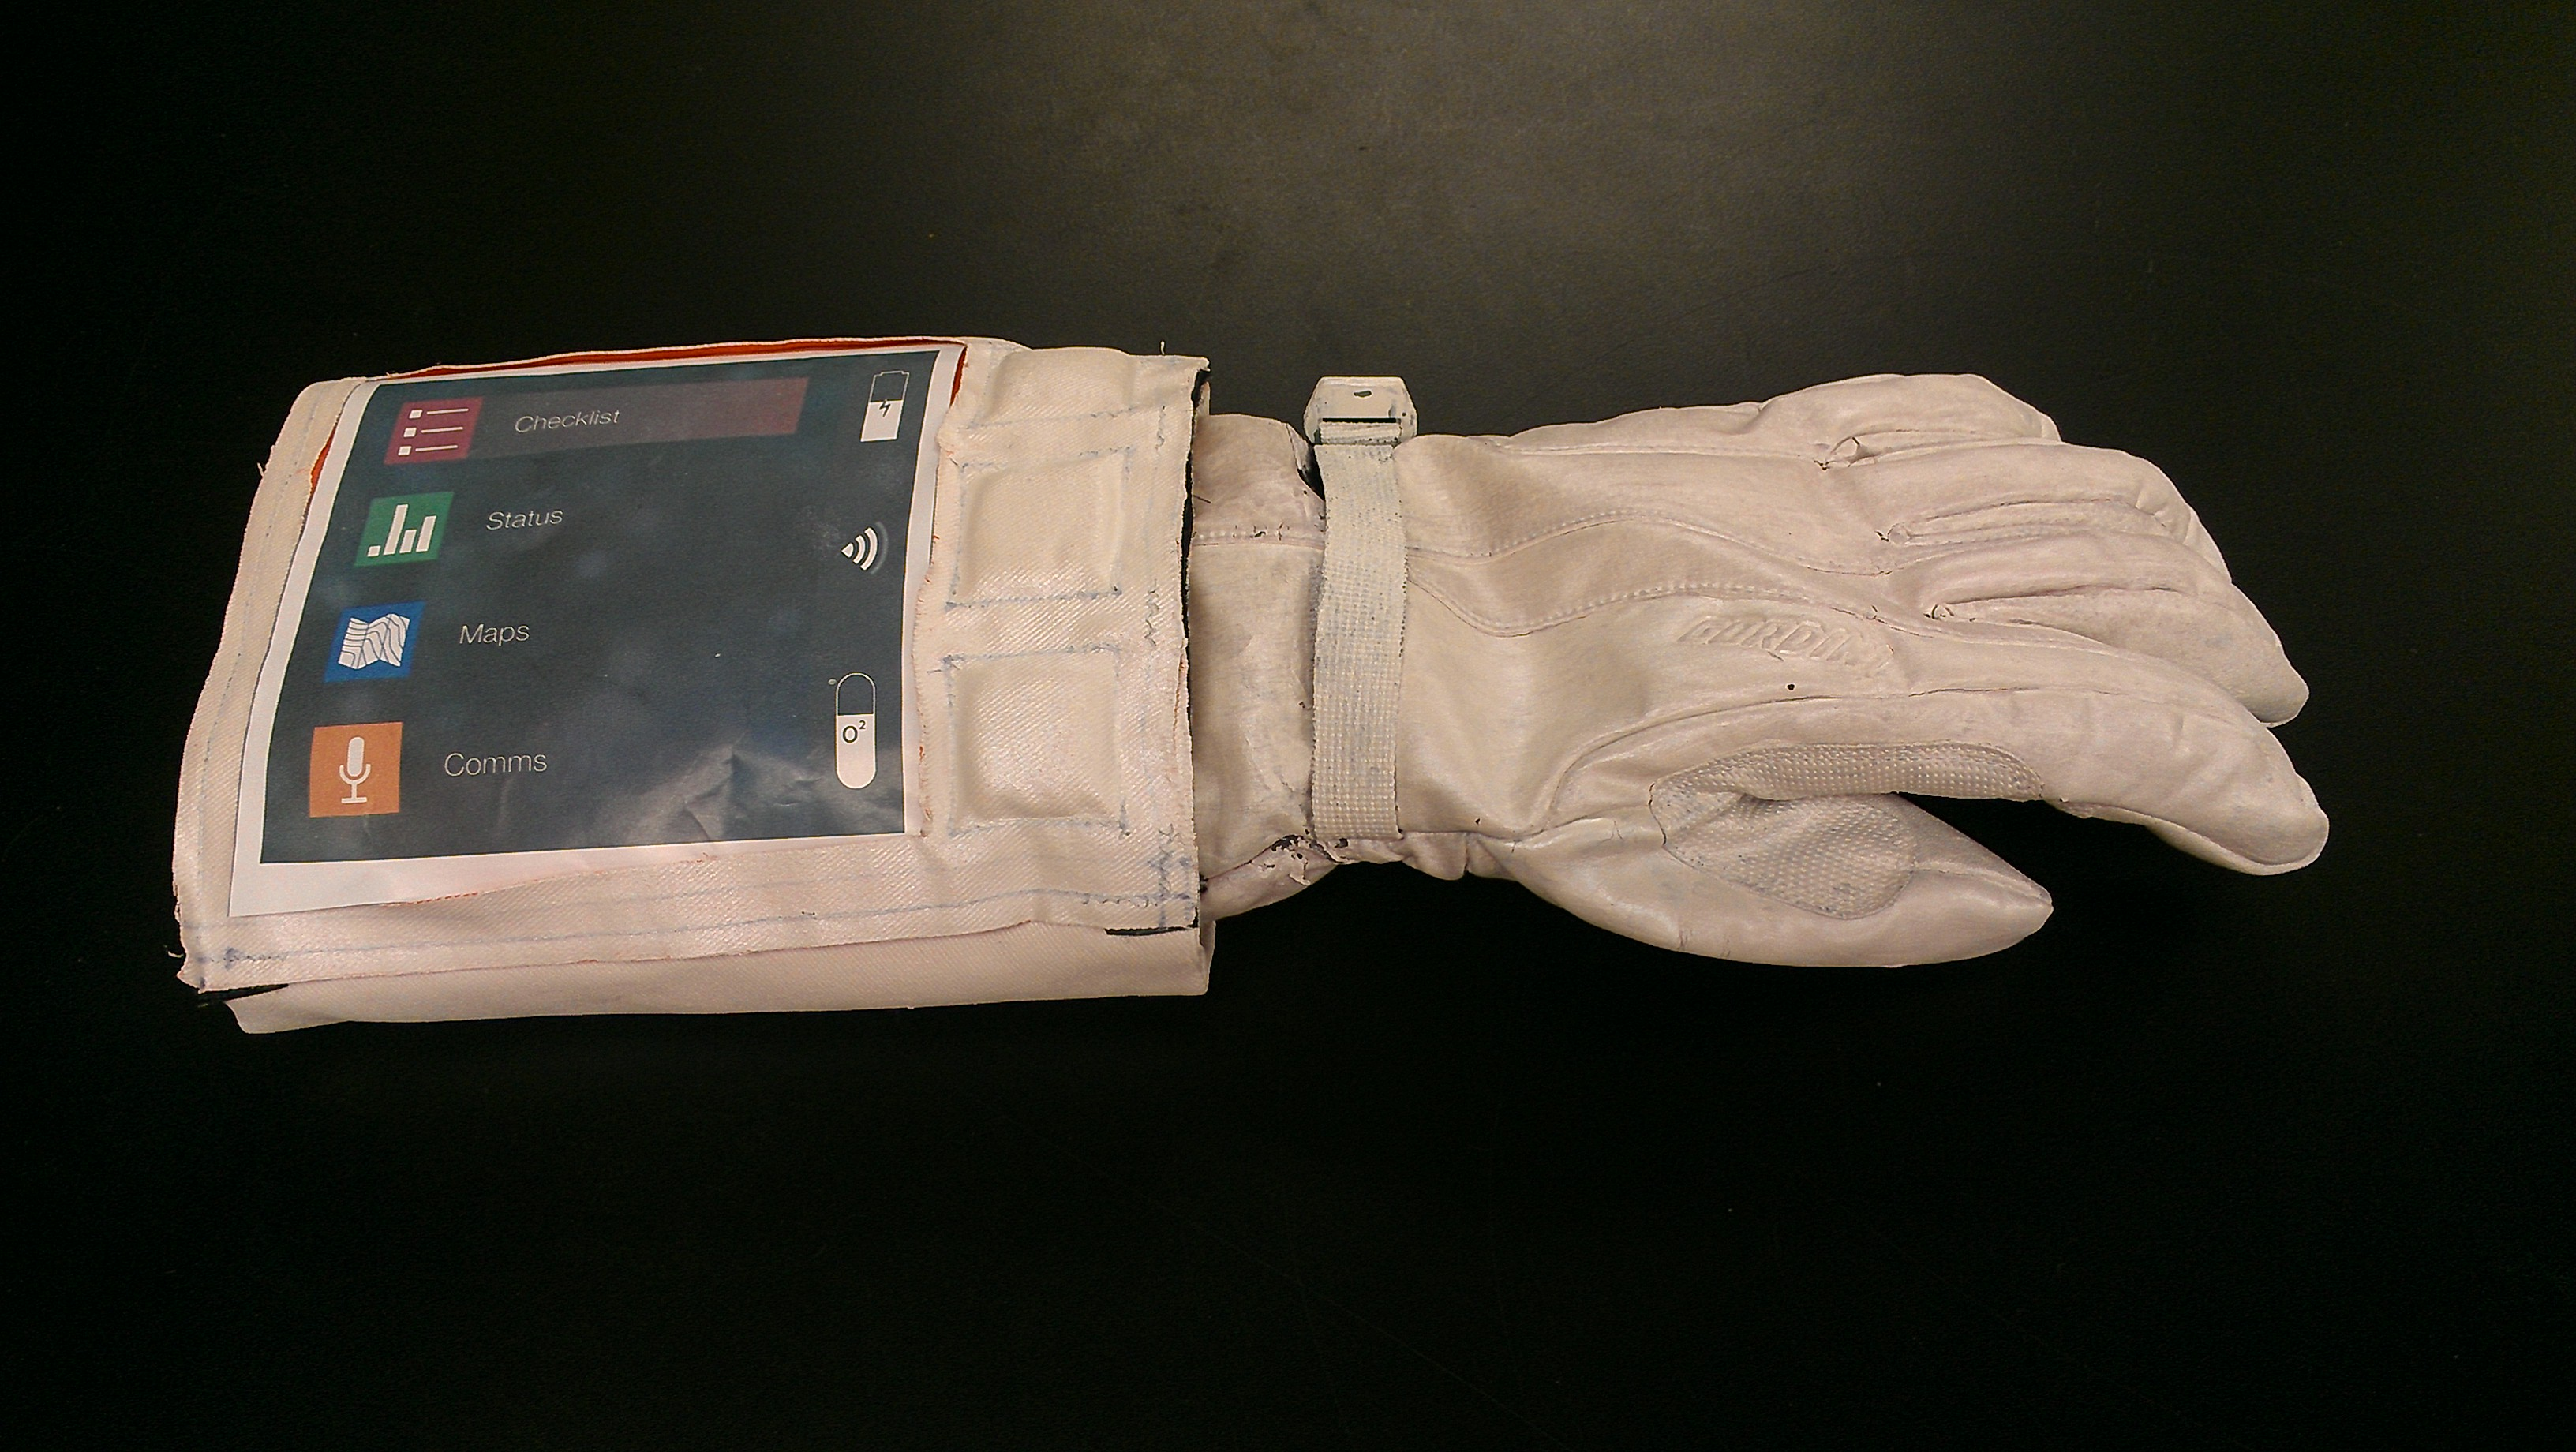 Prototype cuff checklist with soft fabric switches for for Space suit fabric